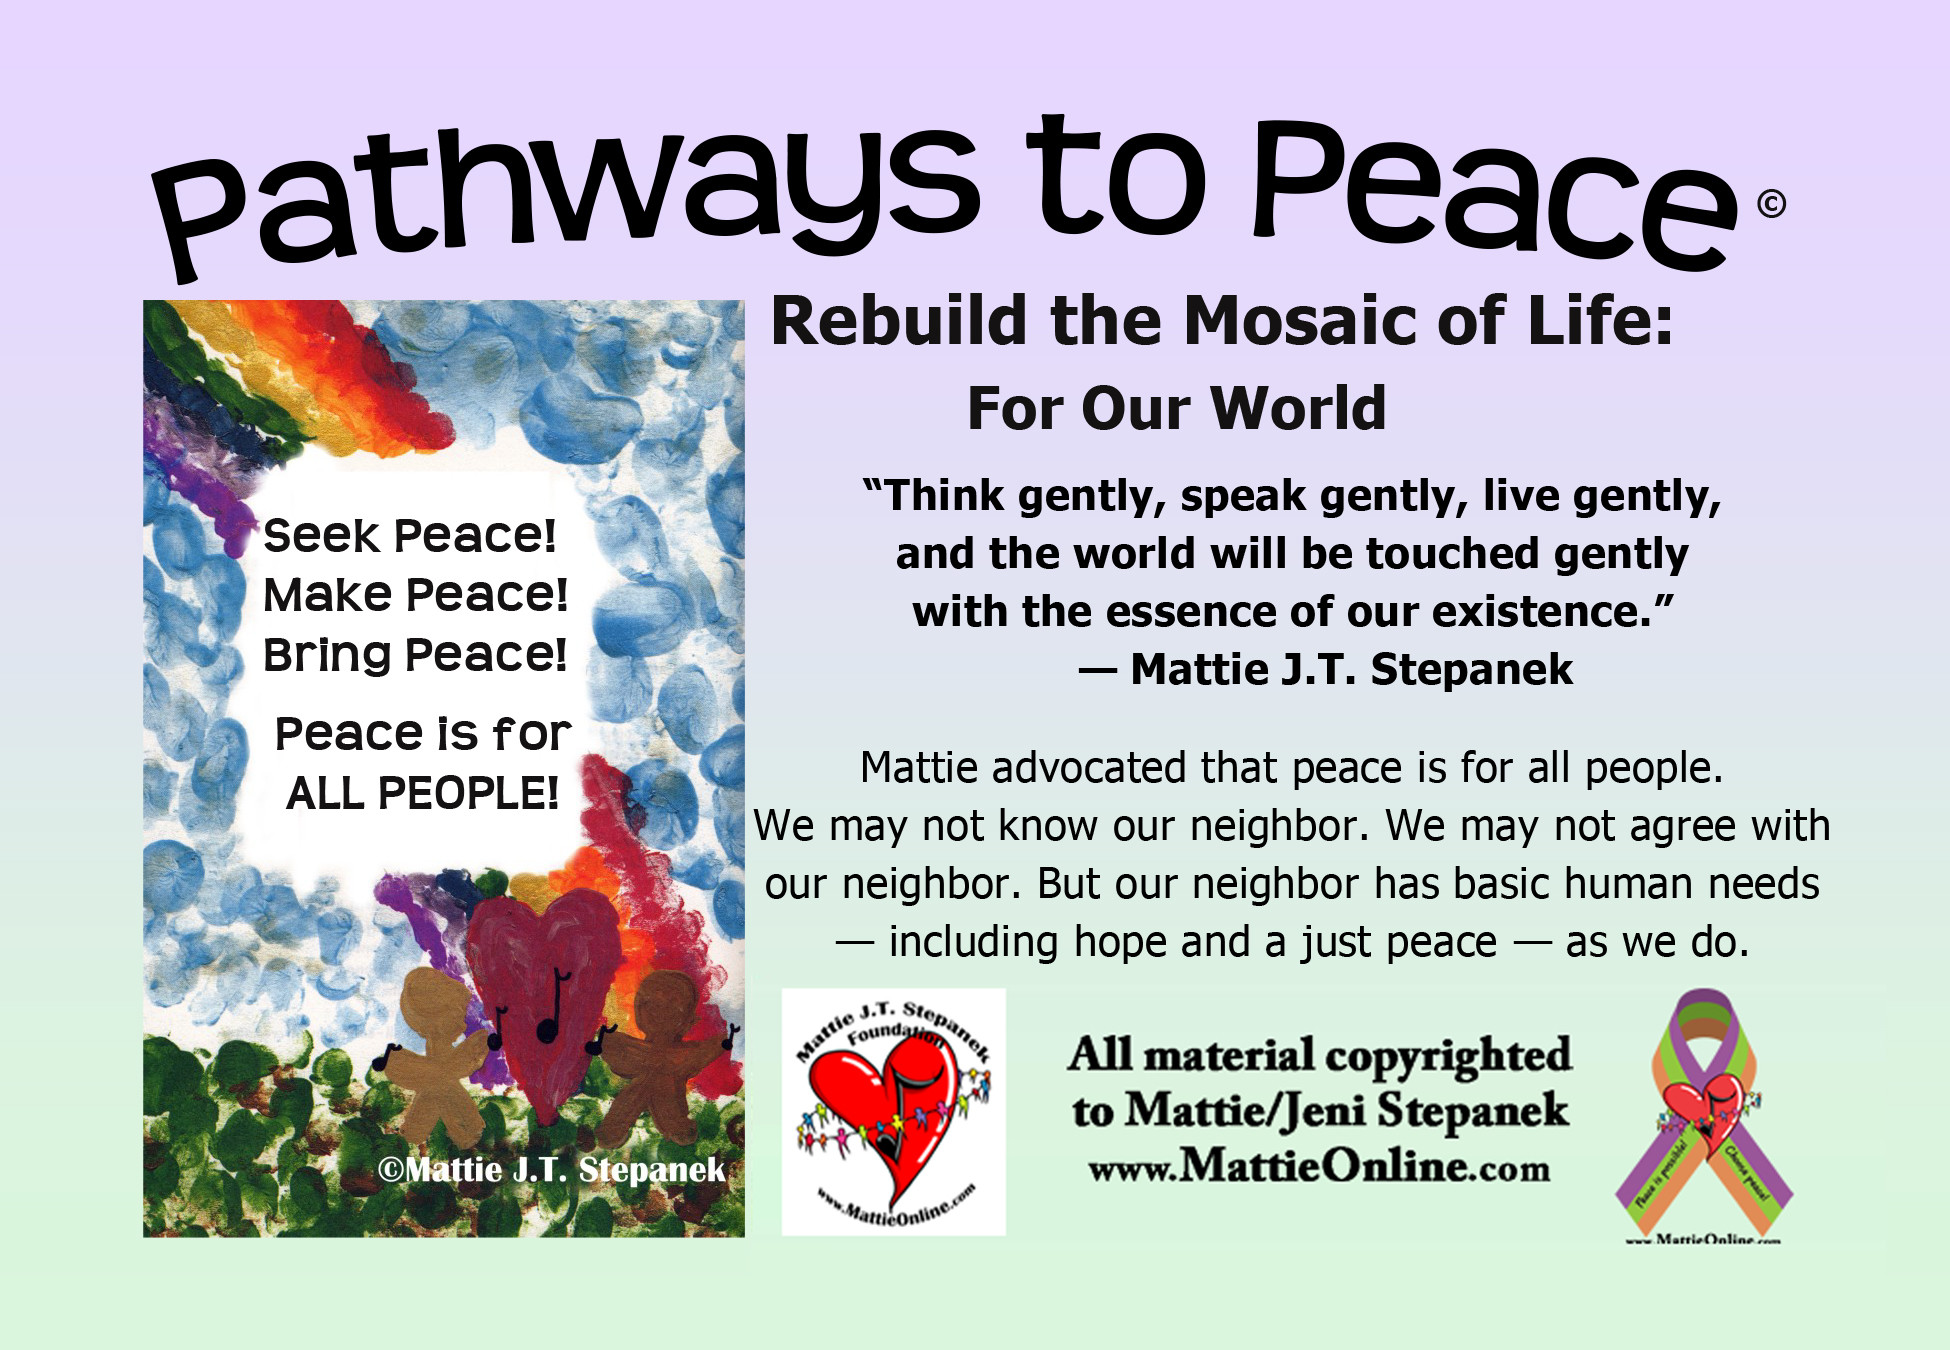 Pathways to Peace rebuild the mosaic